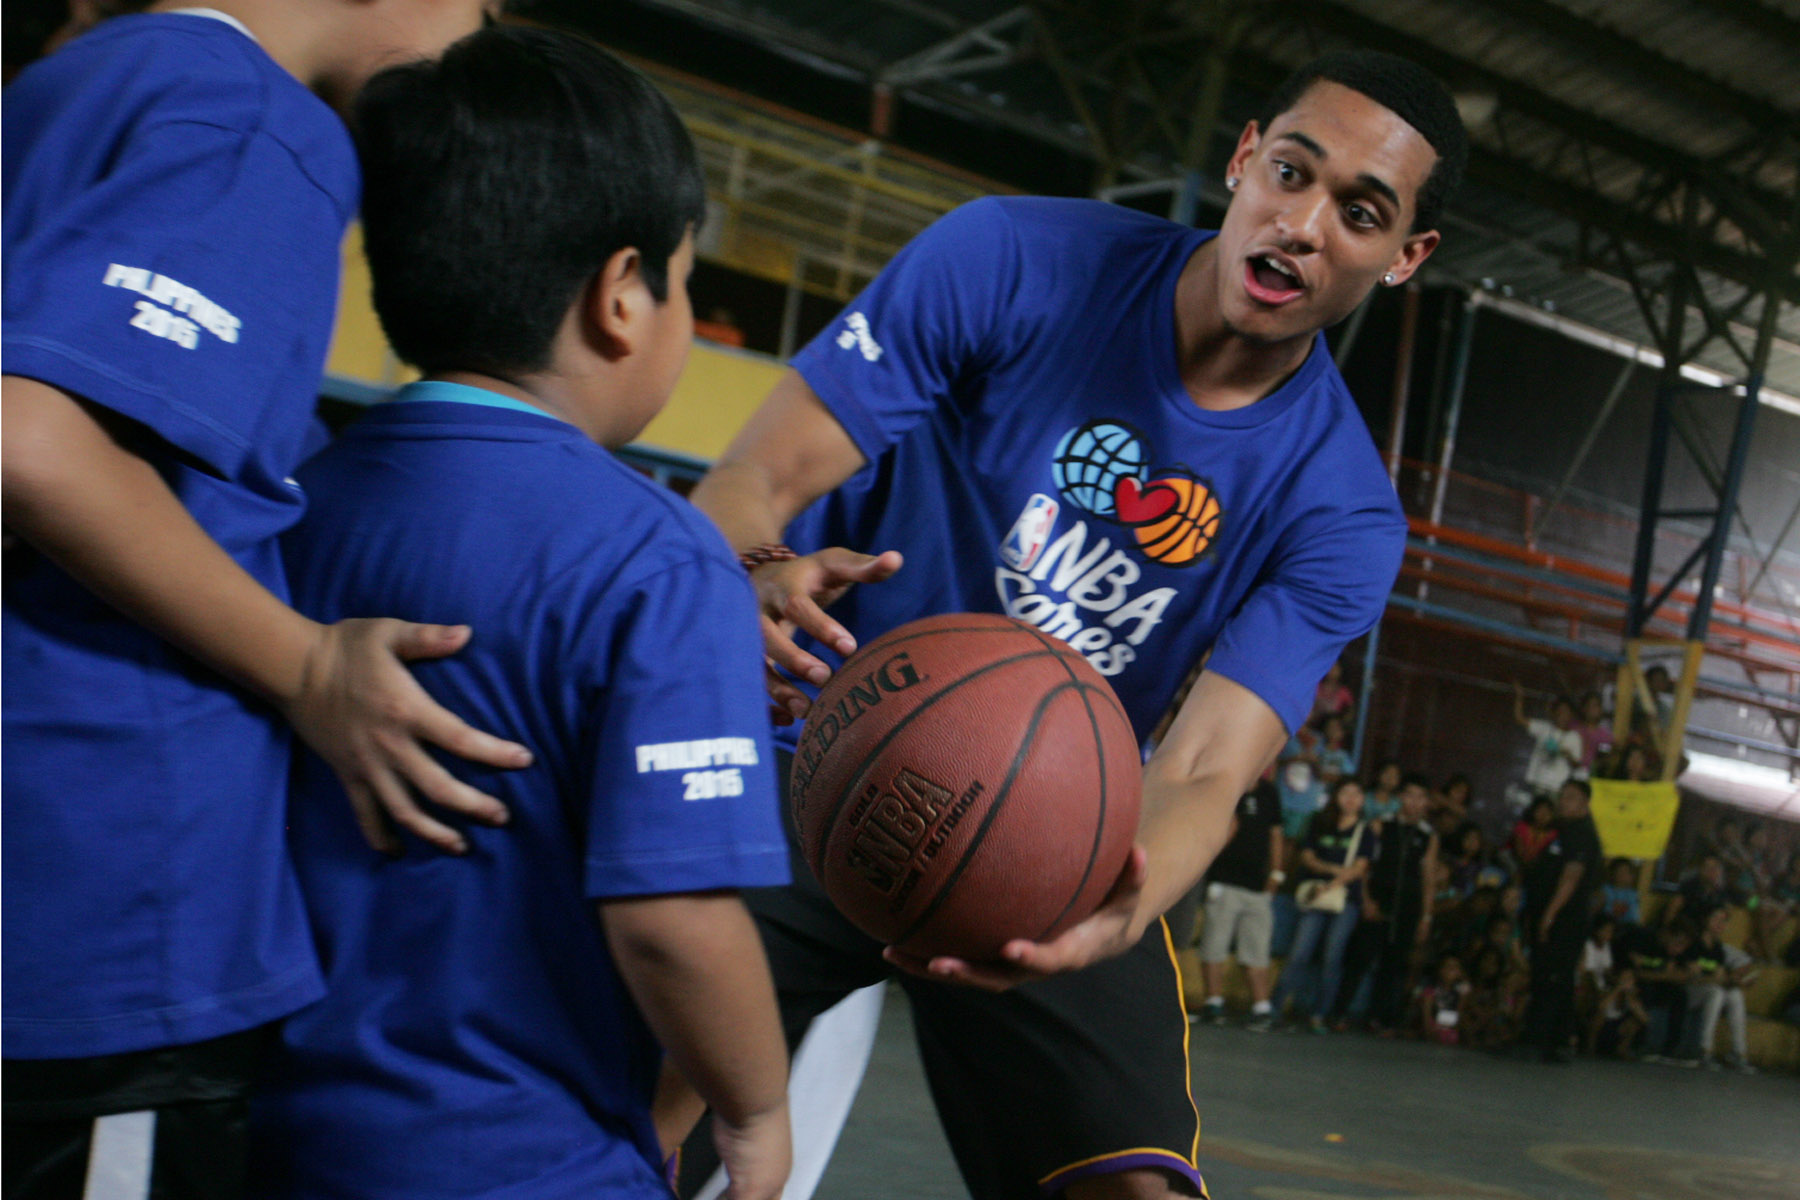 Lakers' Jordan Clarkson teaches underprivileged kids some basketball skills. Photo by Josh Albelda/Rappler